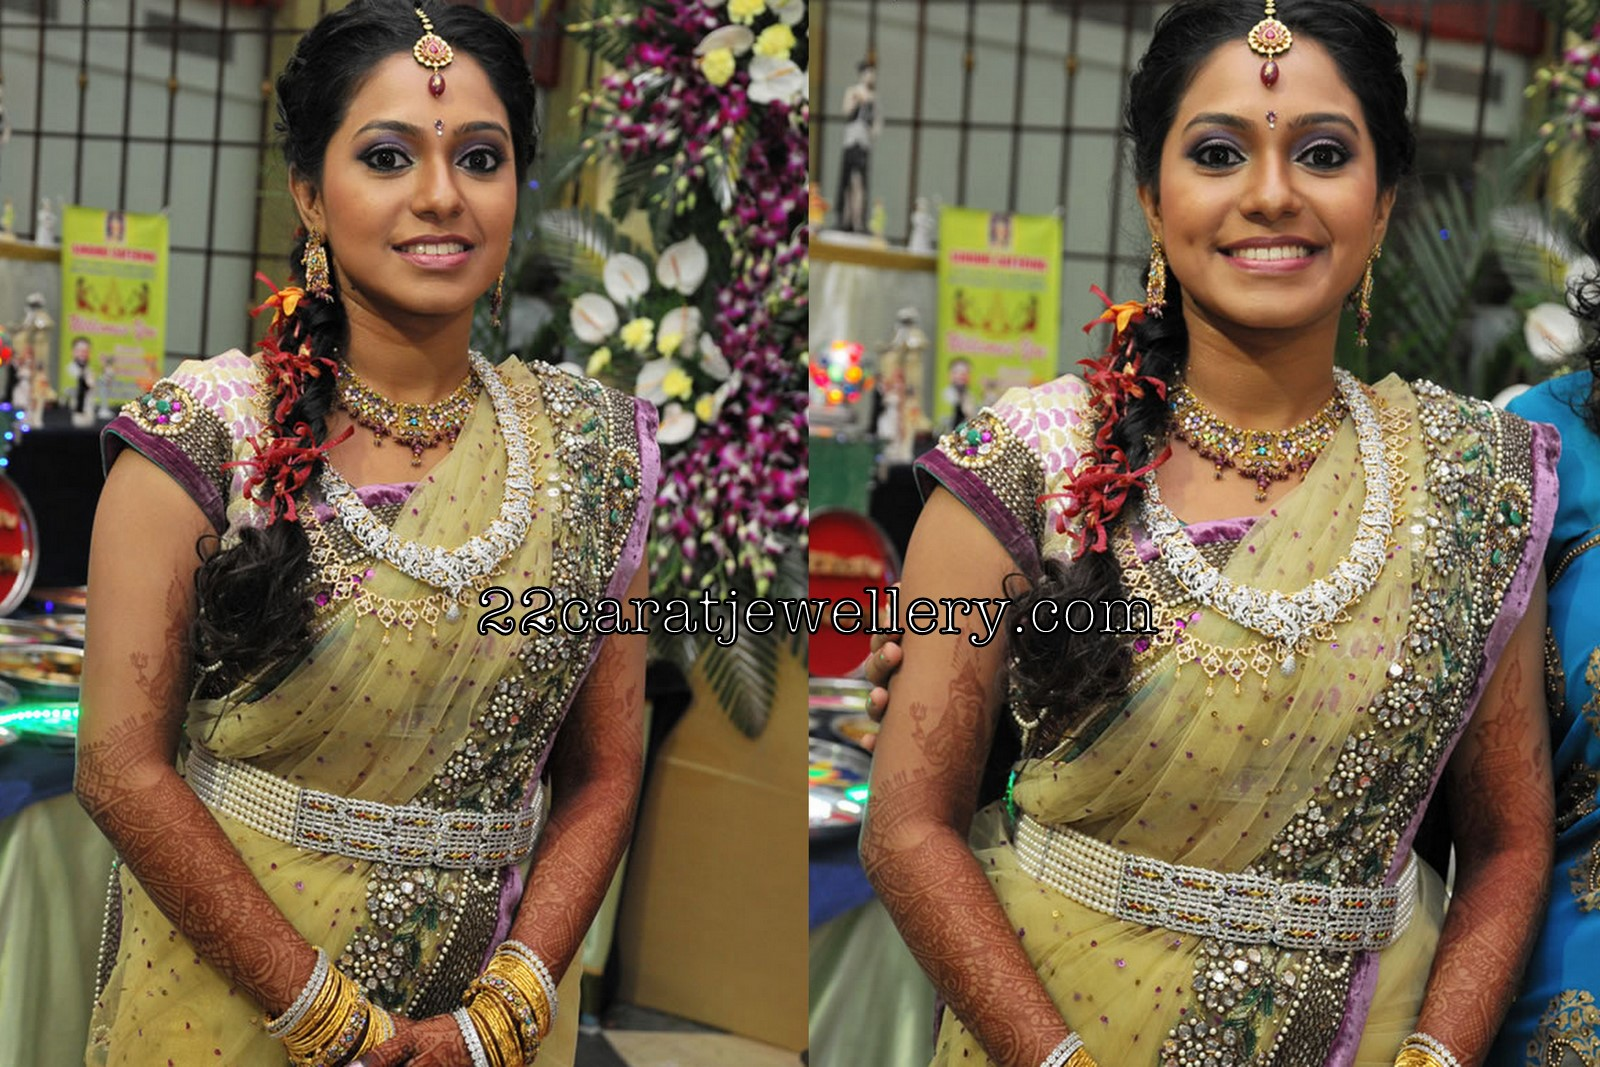 Aparna Pillai In Diamond Long Chain At Her Wedding Reception